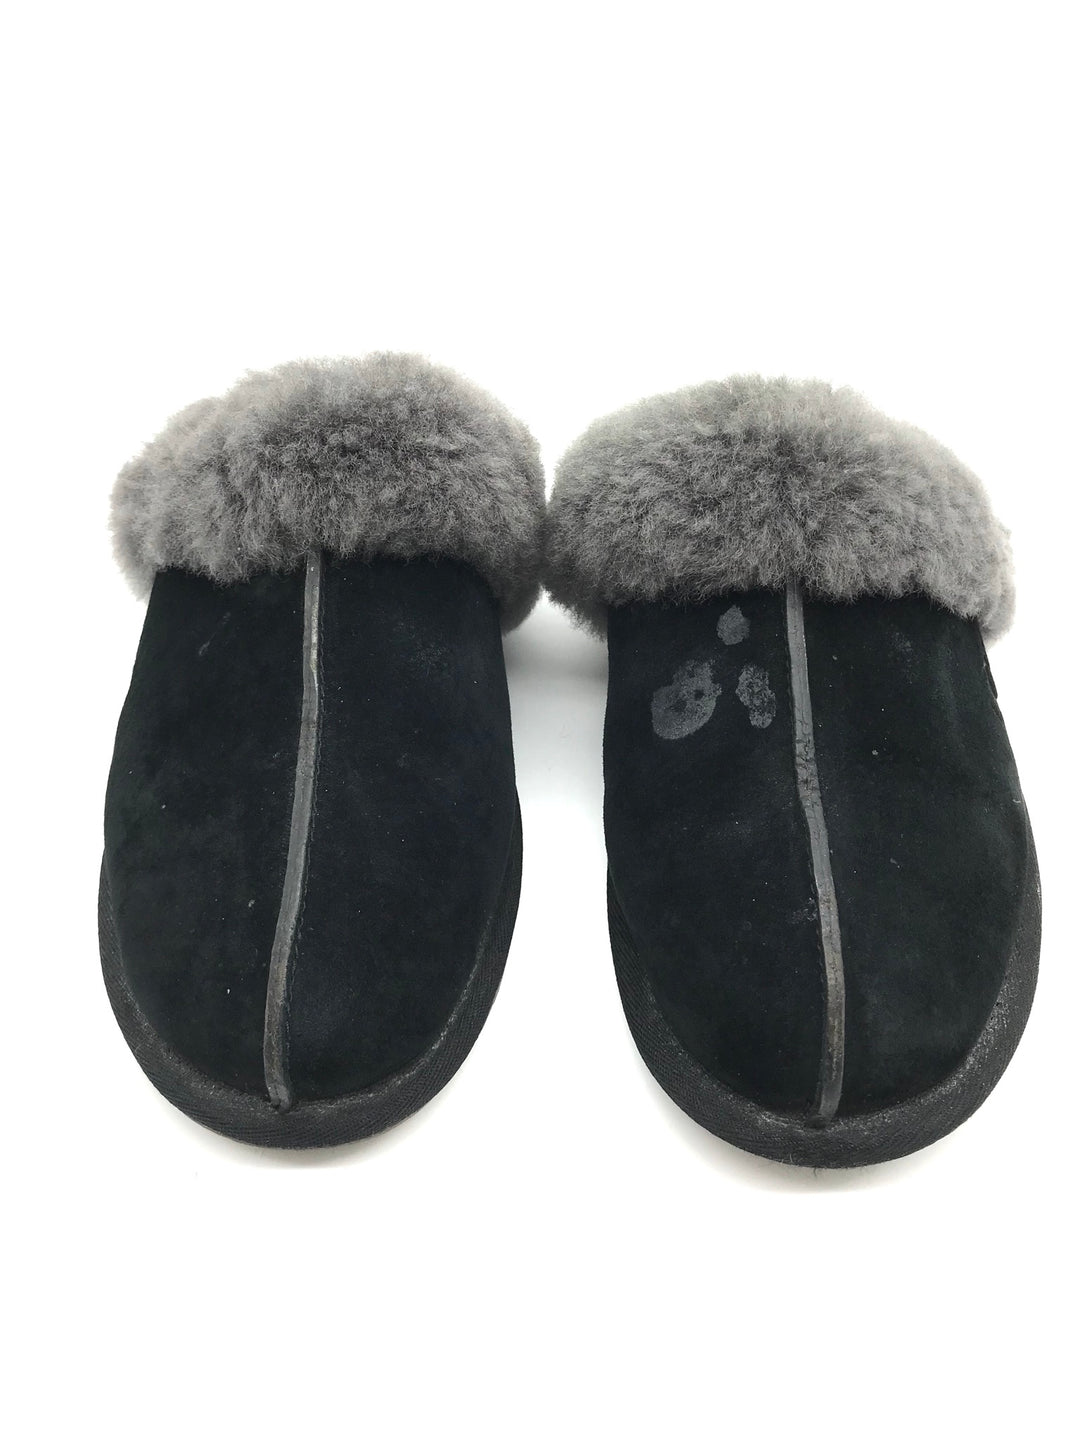 Primary Photo - BRAND: UGG <BR>STYLE: SHOES FLATS <BR>COLOR: BLACK <BR>SIZE: 9 <BR>SKU: 262-26275-65488<BR>MARKS AND WEAR SHOWS - AS IS